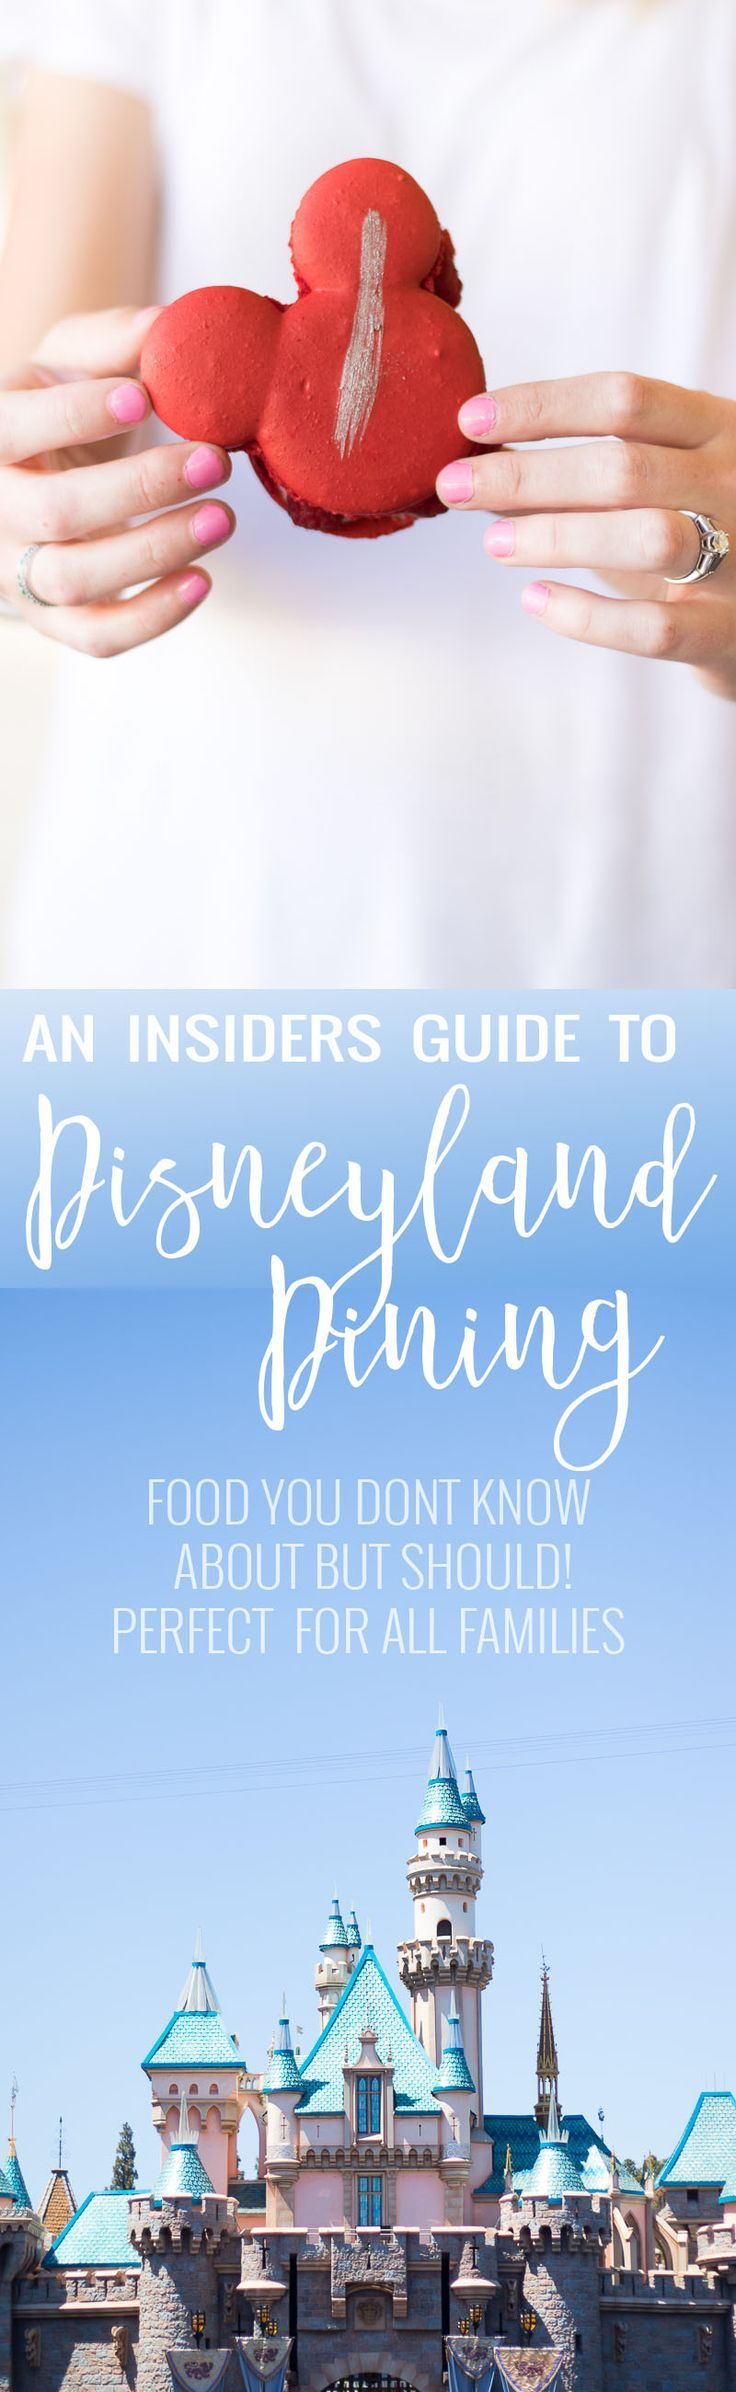 Disney Family Dining Guide | what to eat at Disneyland | what to eat at Disney | Disney food guide | Disneyland food guide | family friendly Disney dining | Disney food tips and tricks | Disneyland tips and tricks || Oh So Delicioso